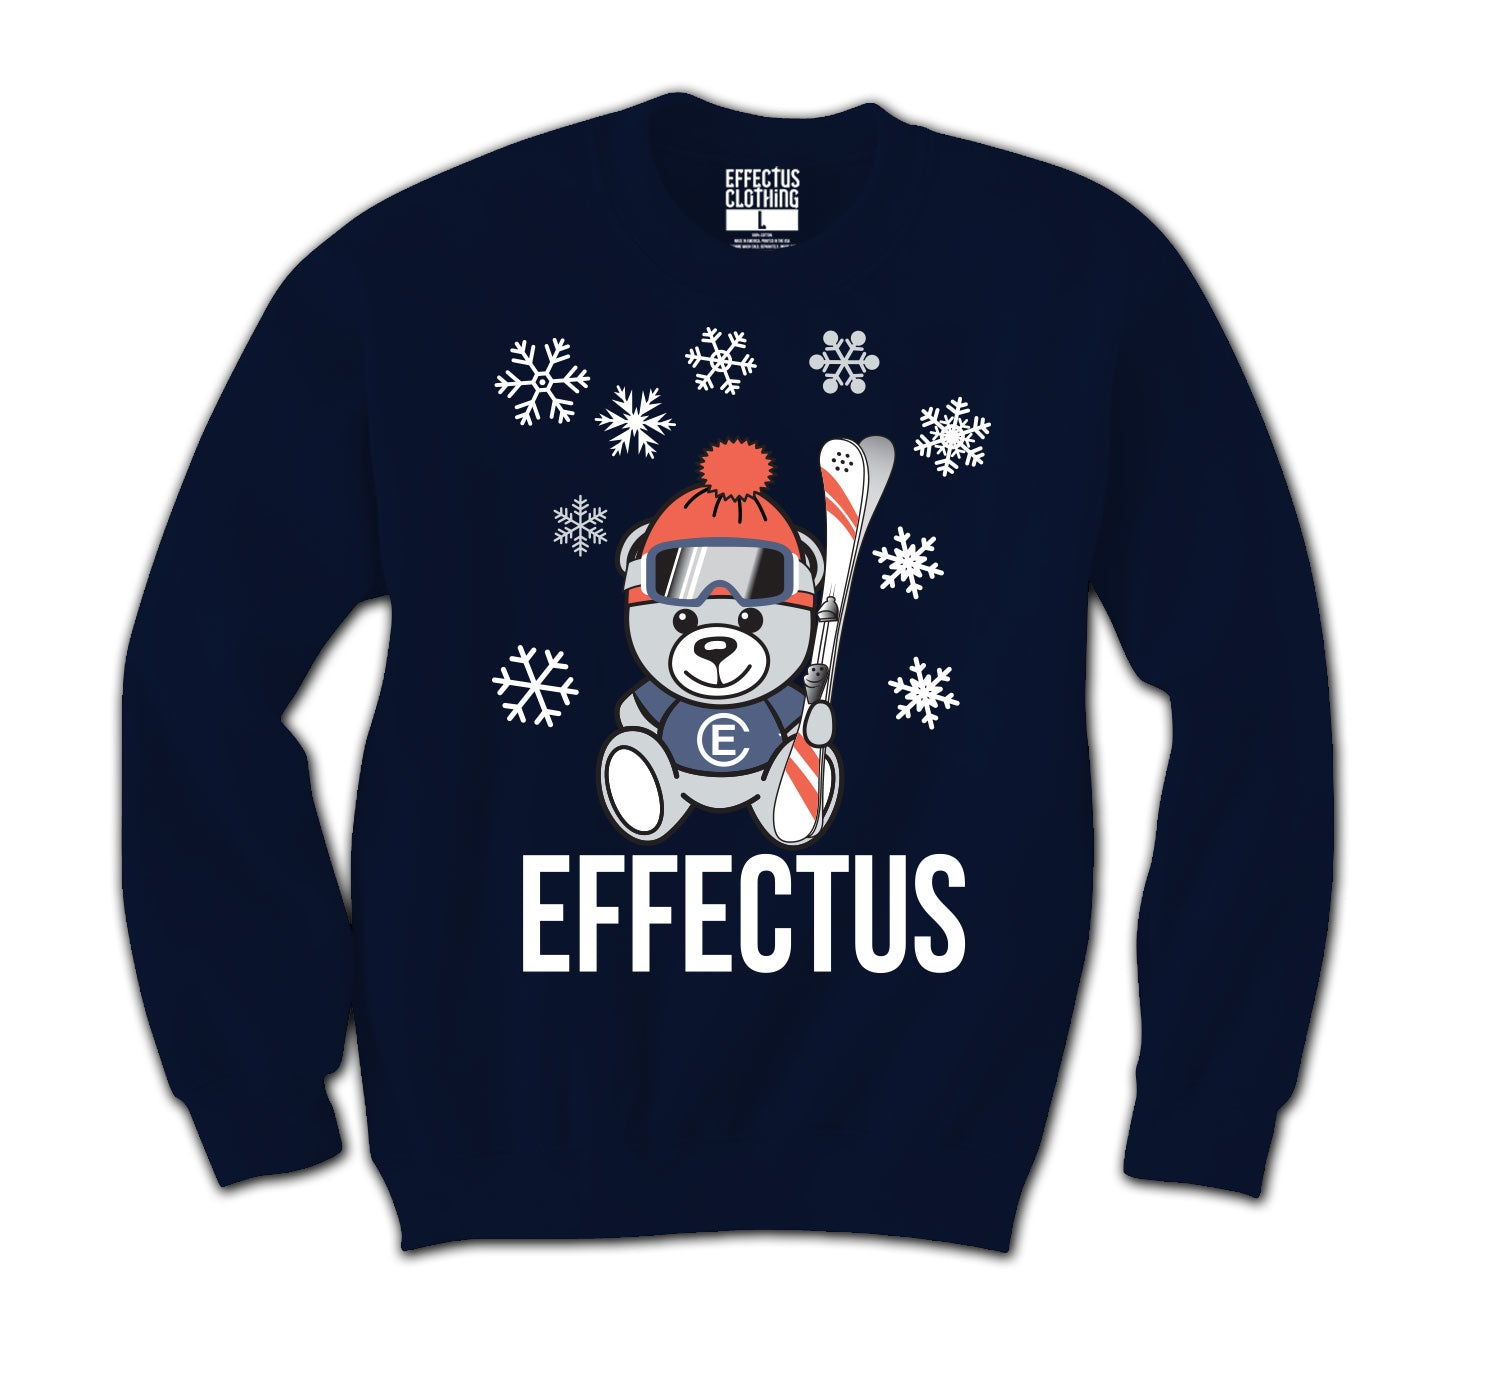 Jordan 4 Loyal Blue Effectus Bear Sweater